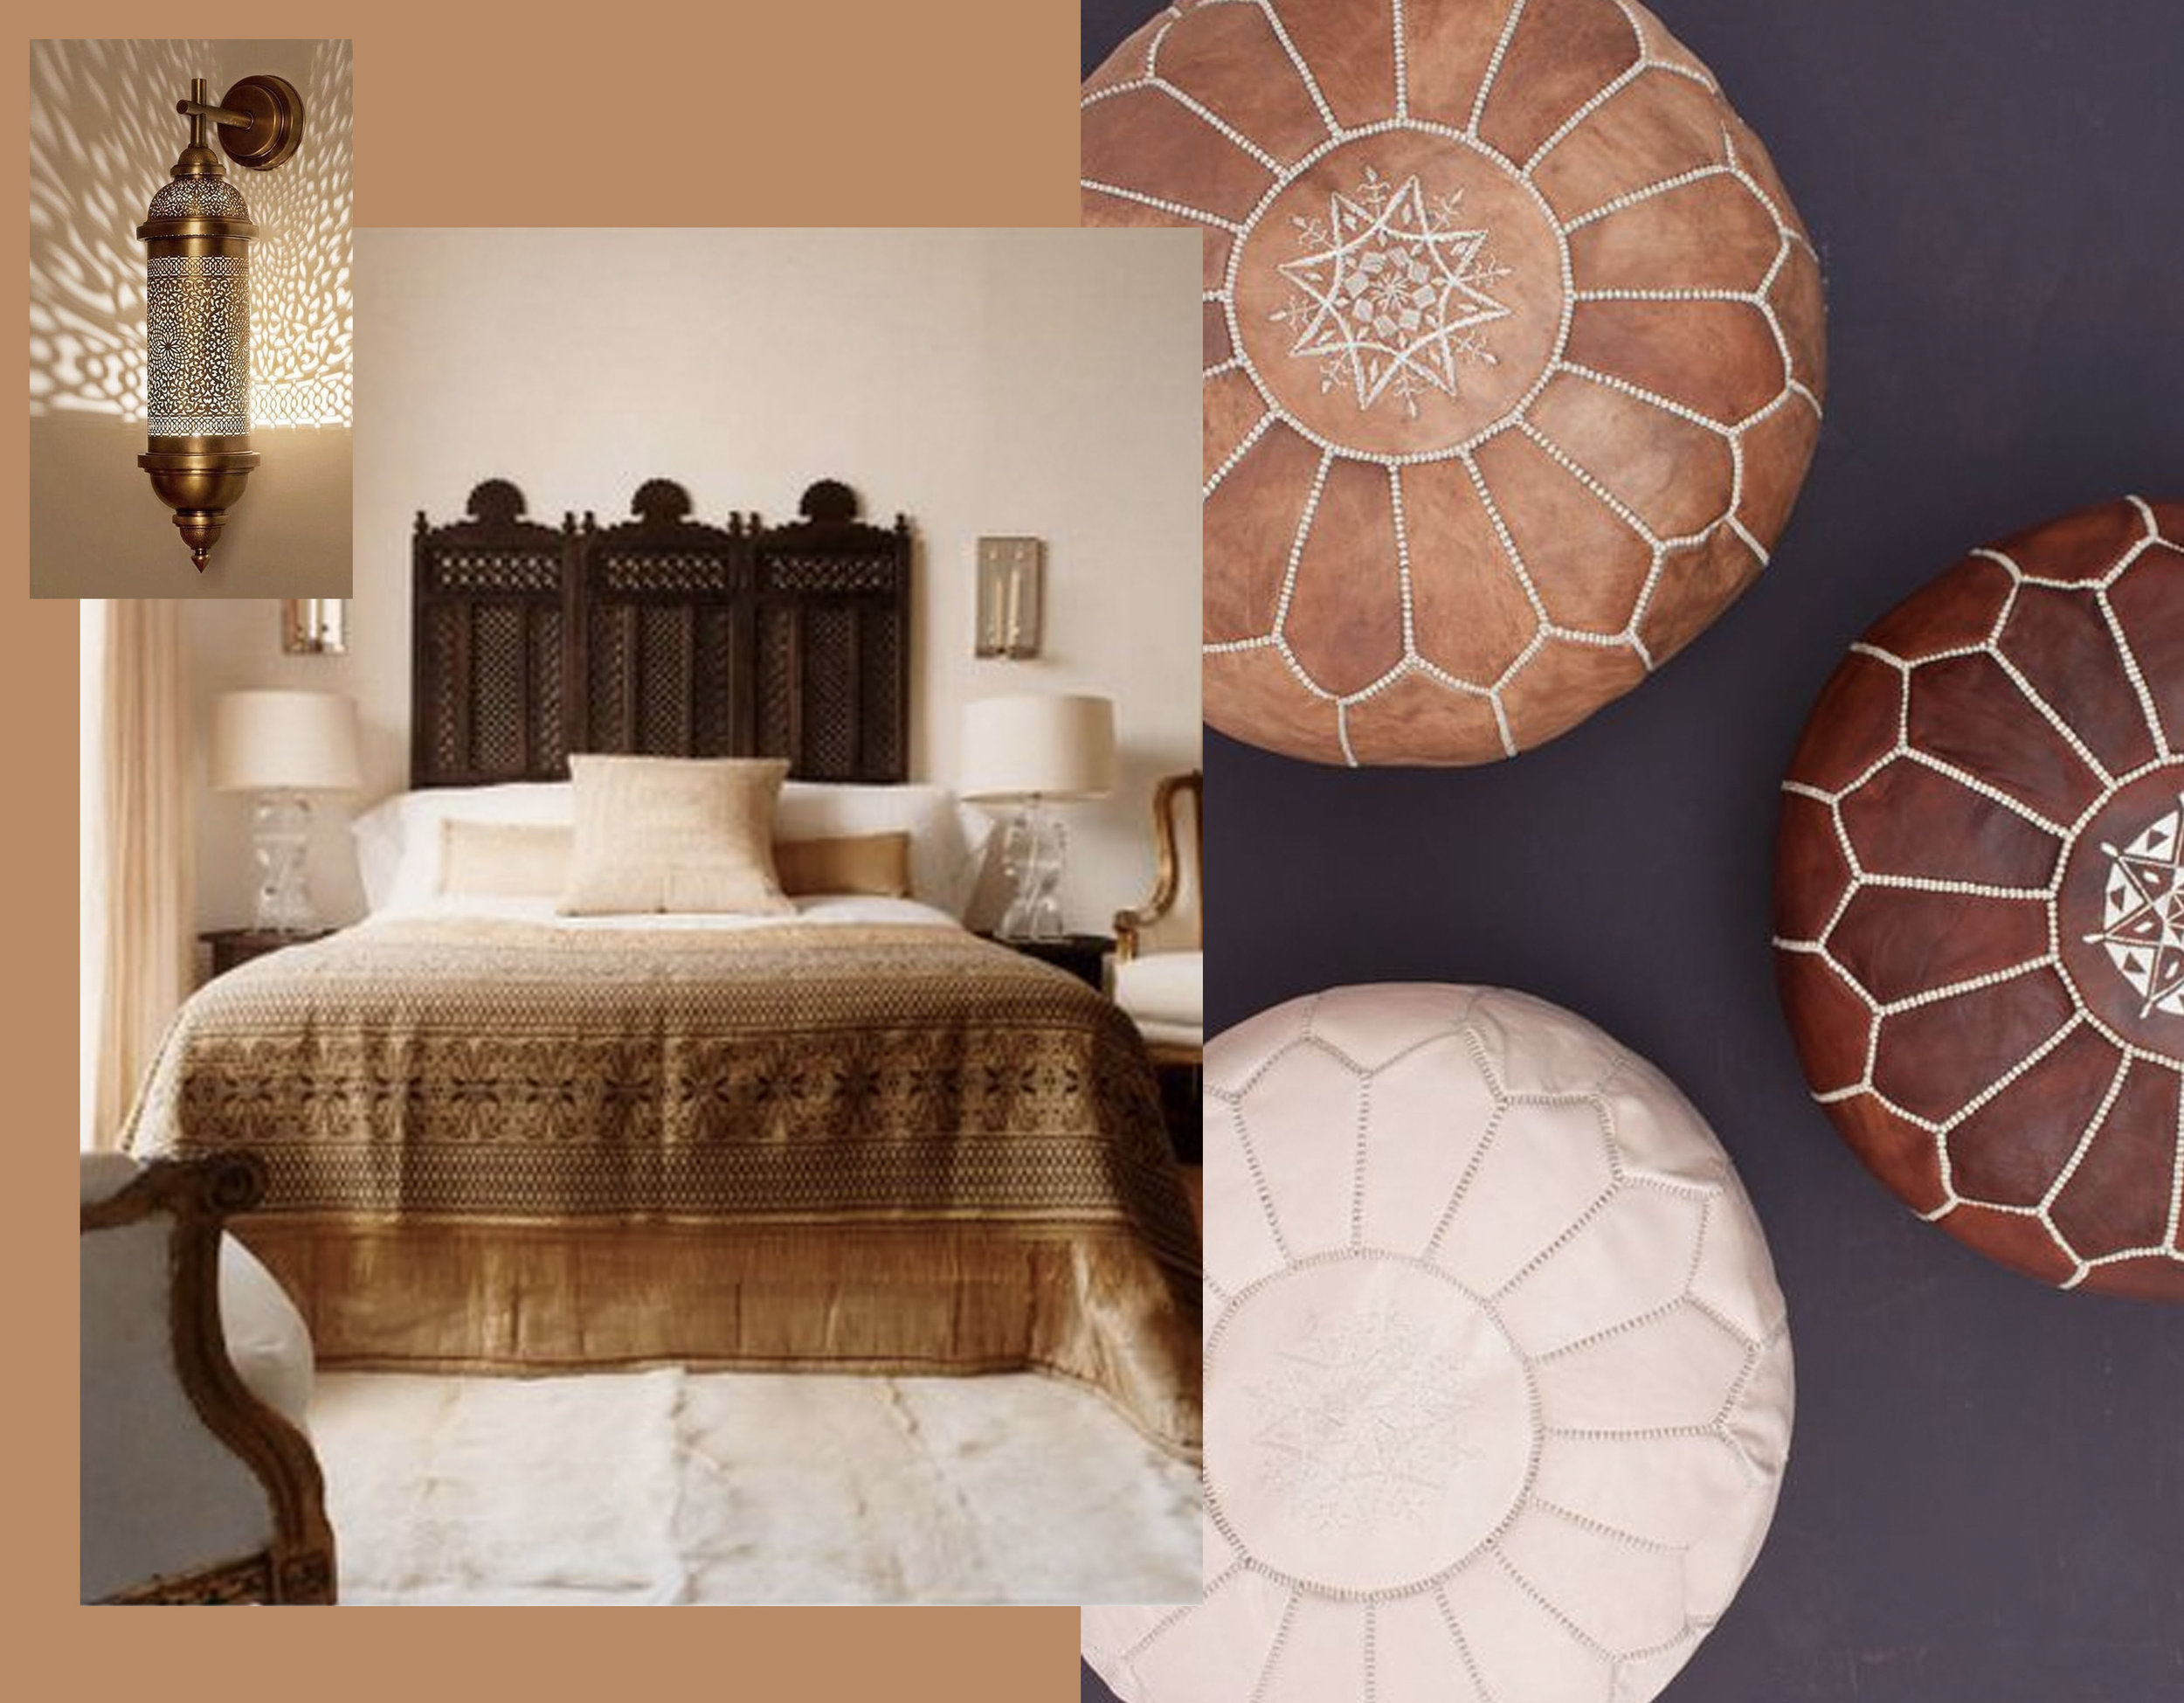 bedroom via  Decor Pad  - Moroccan leather pouf via  Bohemia